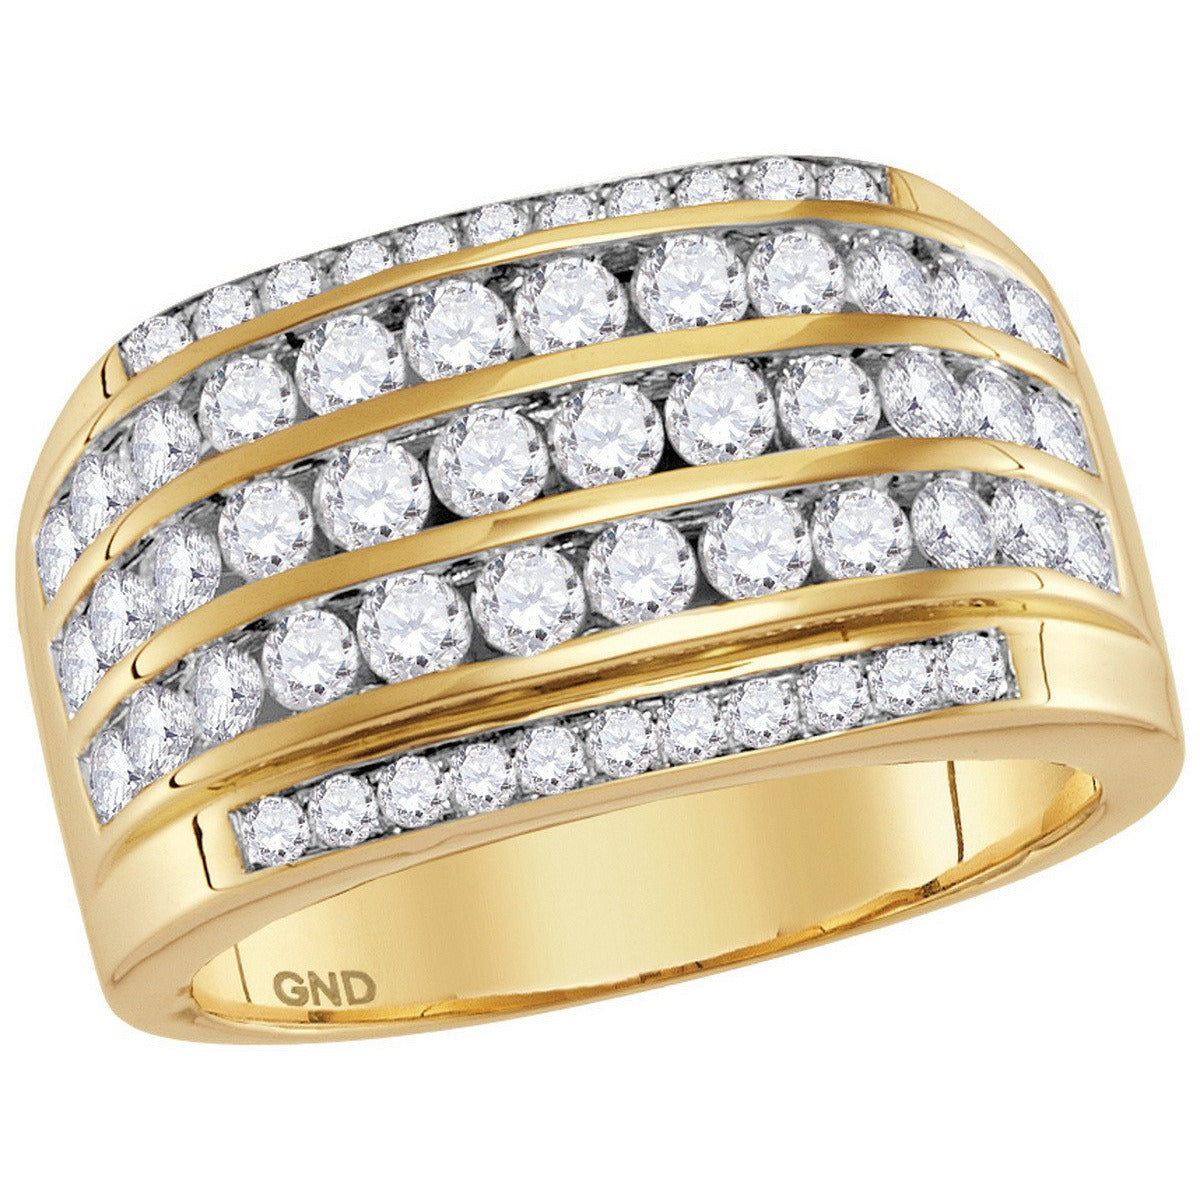 14kt Yellow Gold Mens Round Diamond Striped Wedding Anniversary Band Ring 2-1/3 Cttw 114851 - shirin-diamonds